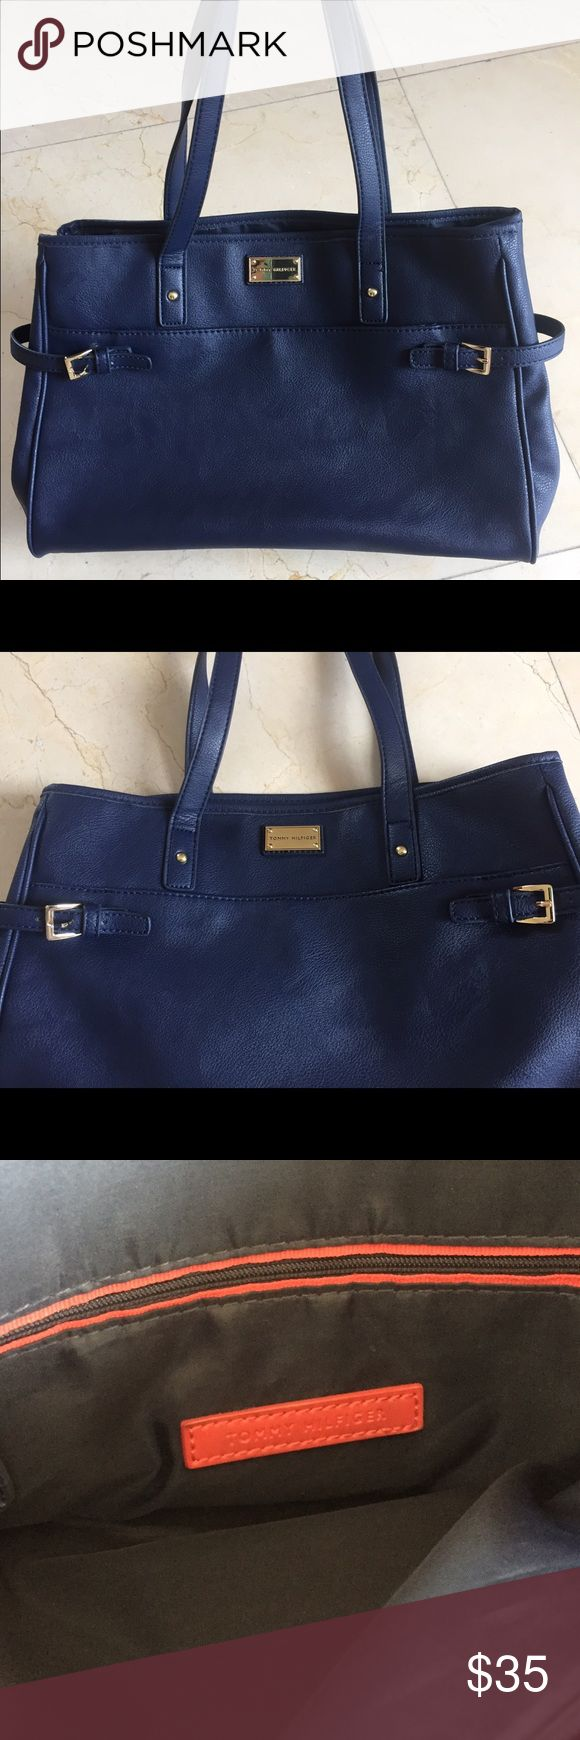 Tommy Hilfiger faux leather navy bag Tommy Hilfiger faux leather navy bag. Fabric interior. In great condition! Used 2x :D Tommy Hilfiger Bags Totes